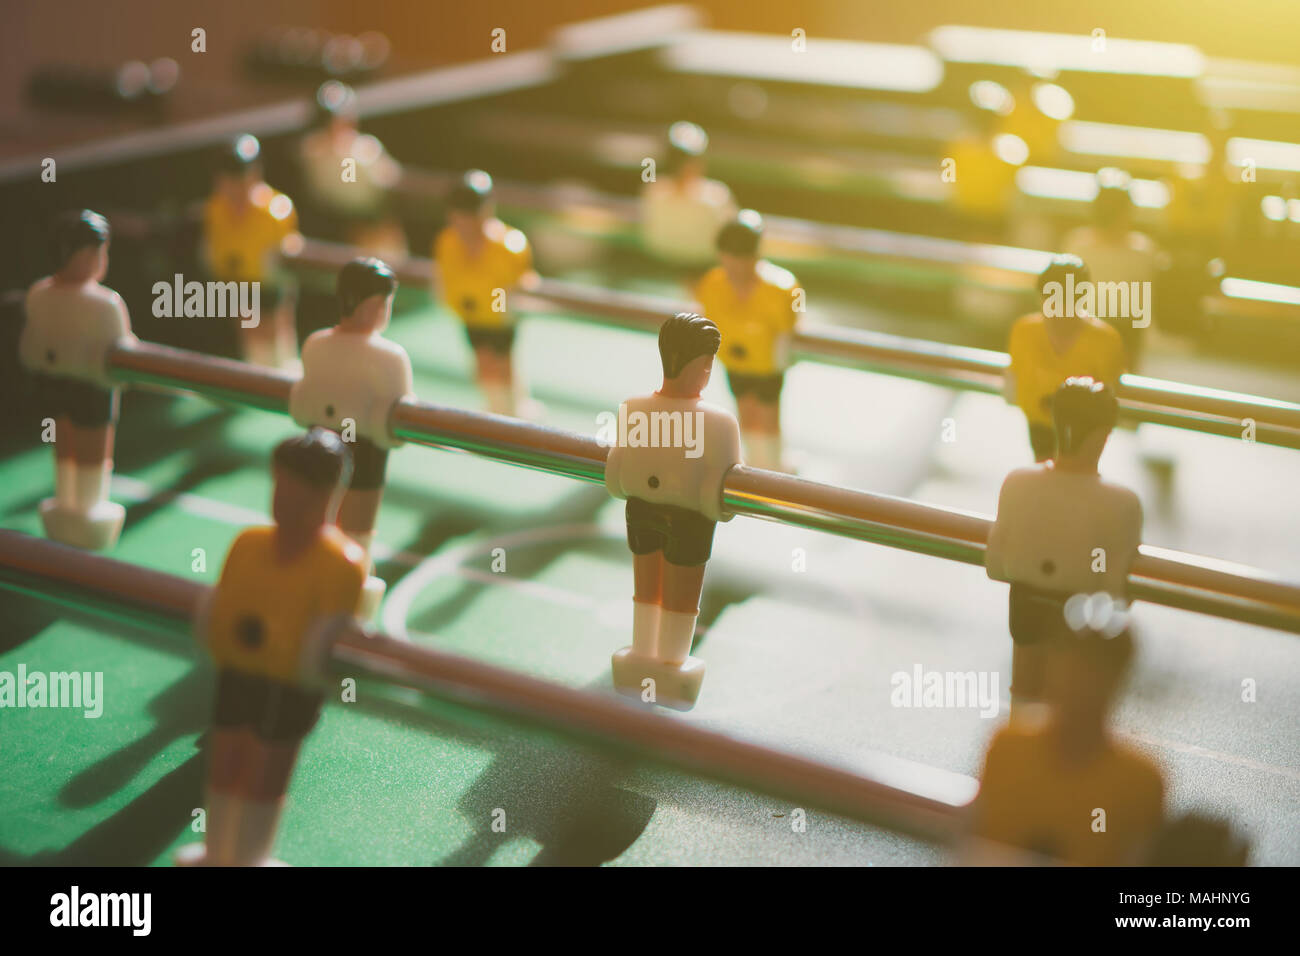 Table football game with yellow and white players. - Stock Image